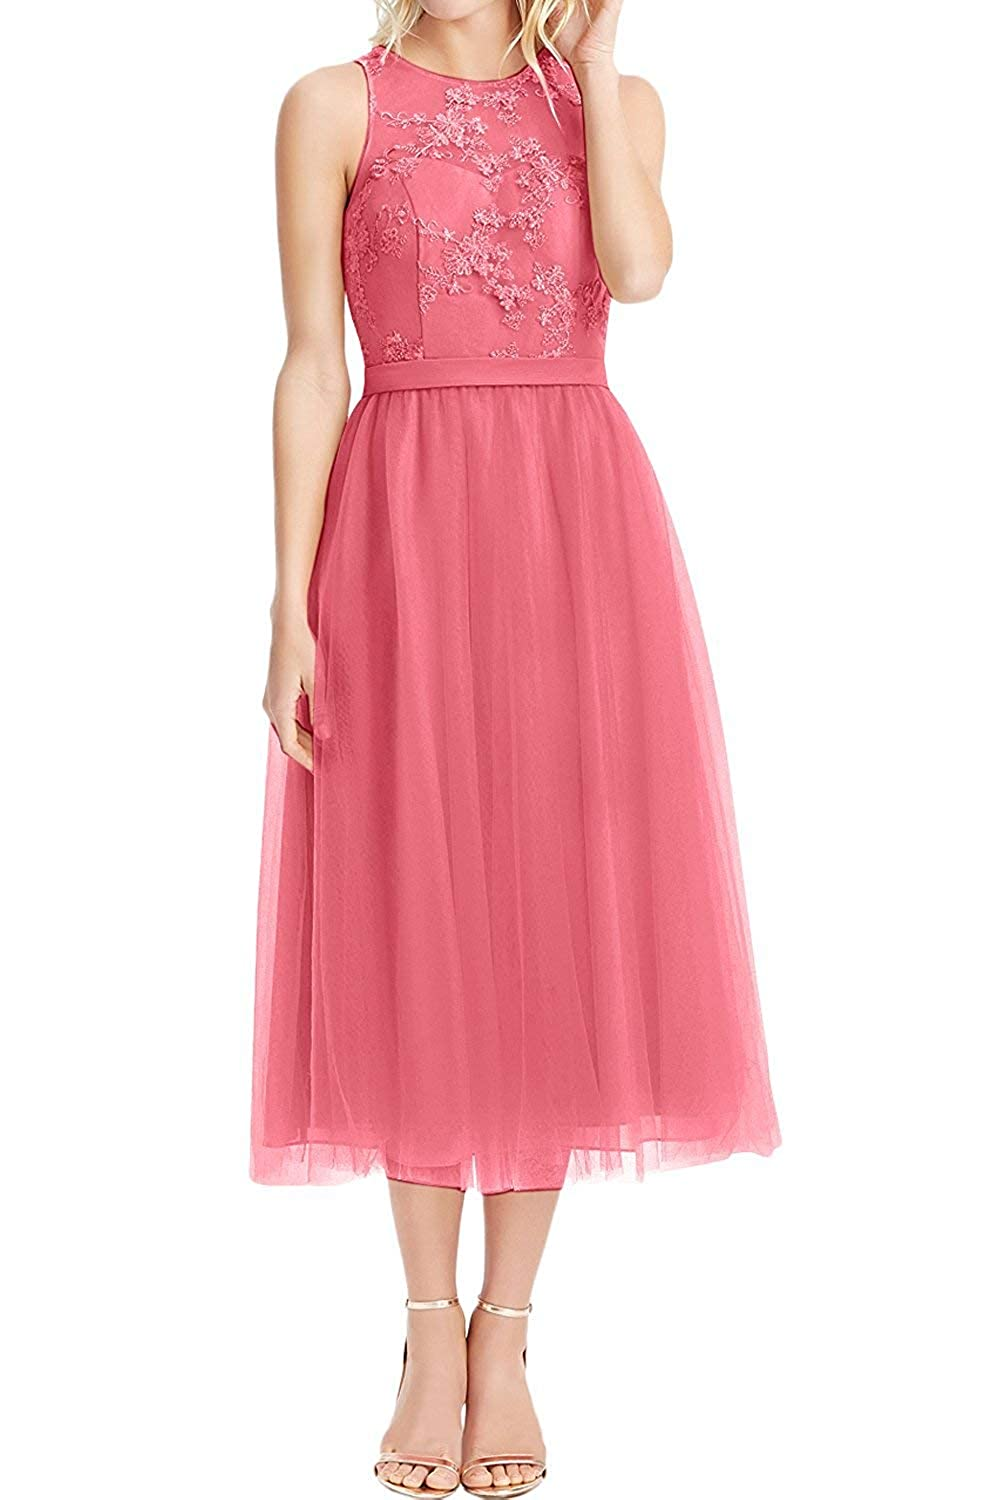 Coral JQLD Women's Elegant Applique High Neck Tulle Bridesmaid Dresses 2019 Short Party Prom Gowns